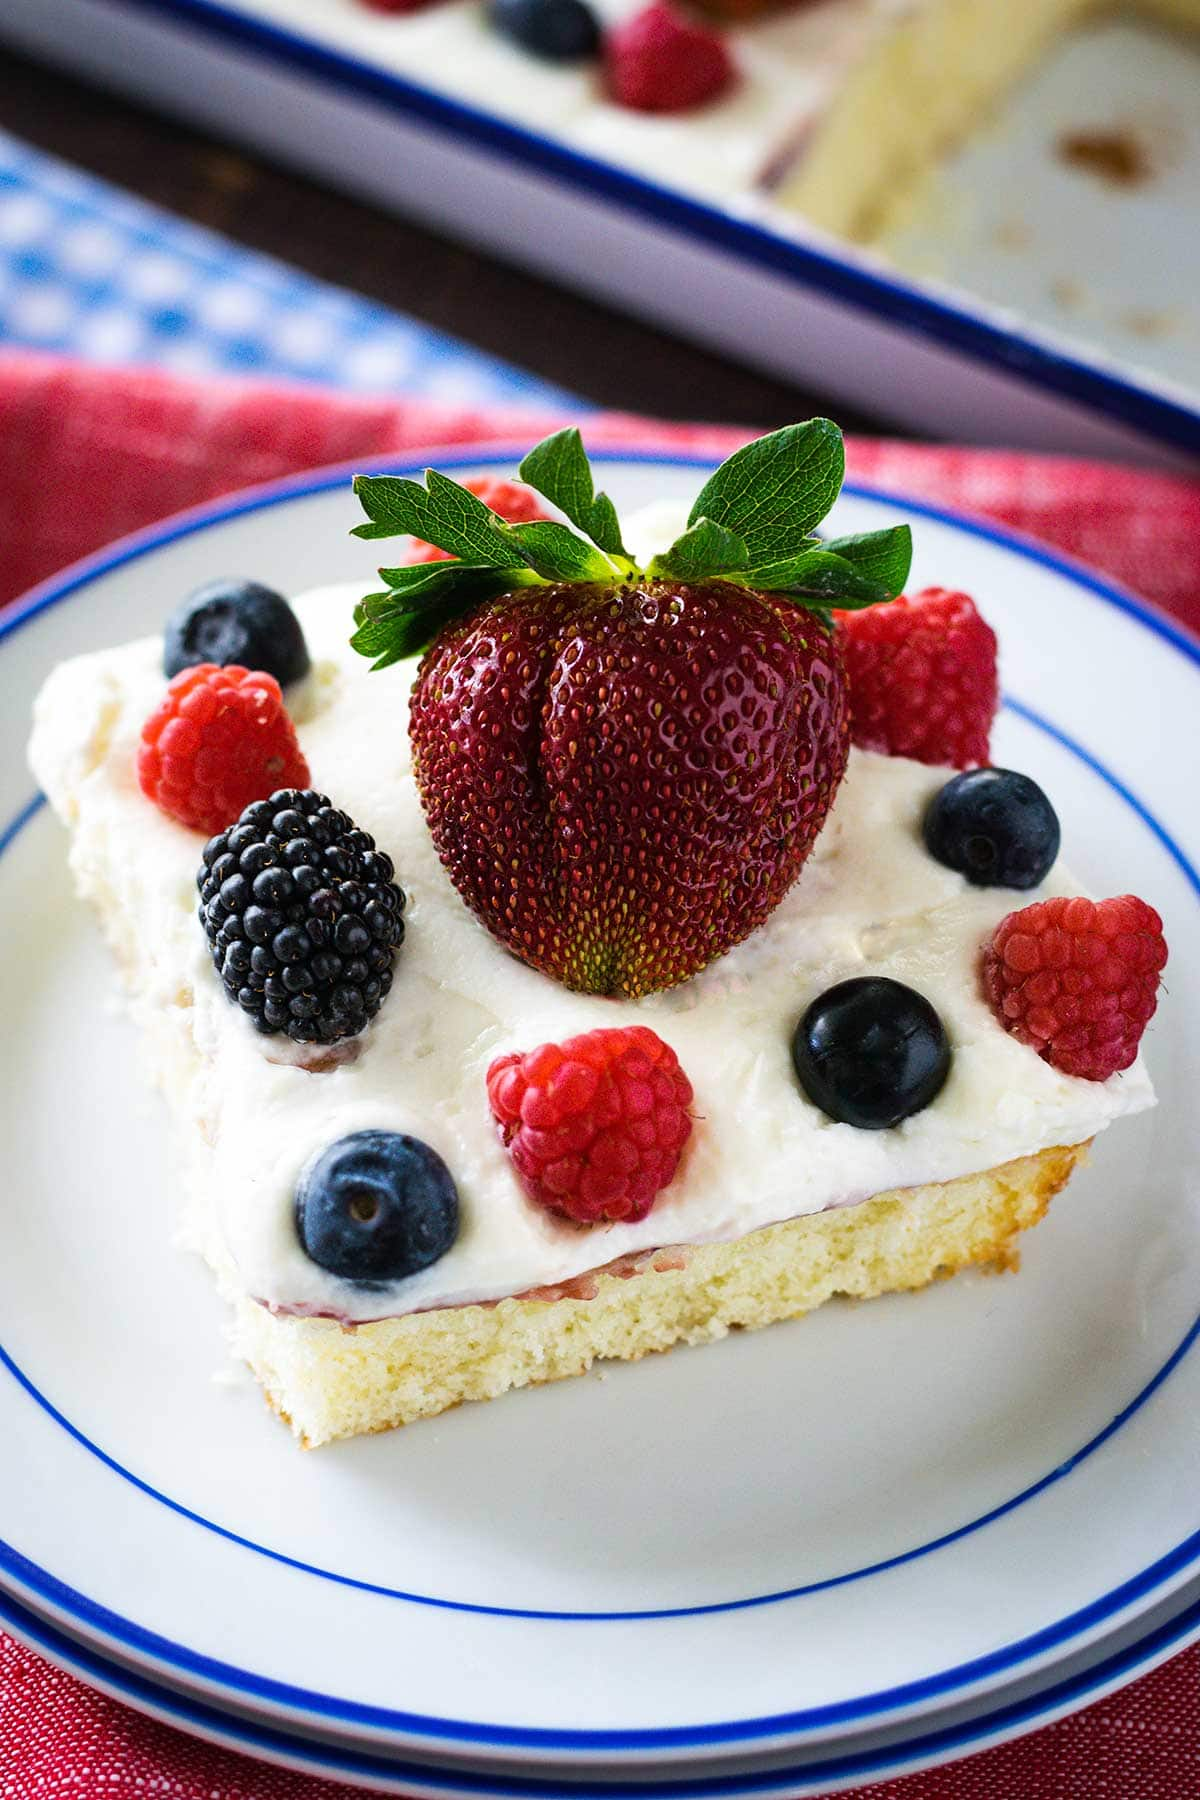 Up close image of a slice of chantilly cake topped with fresh berries on a white plate with blue trim.